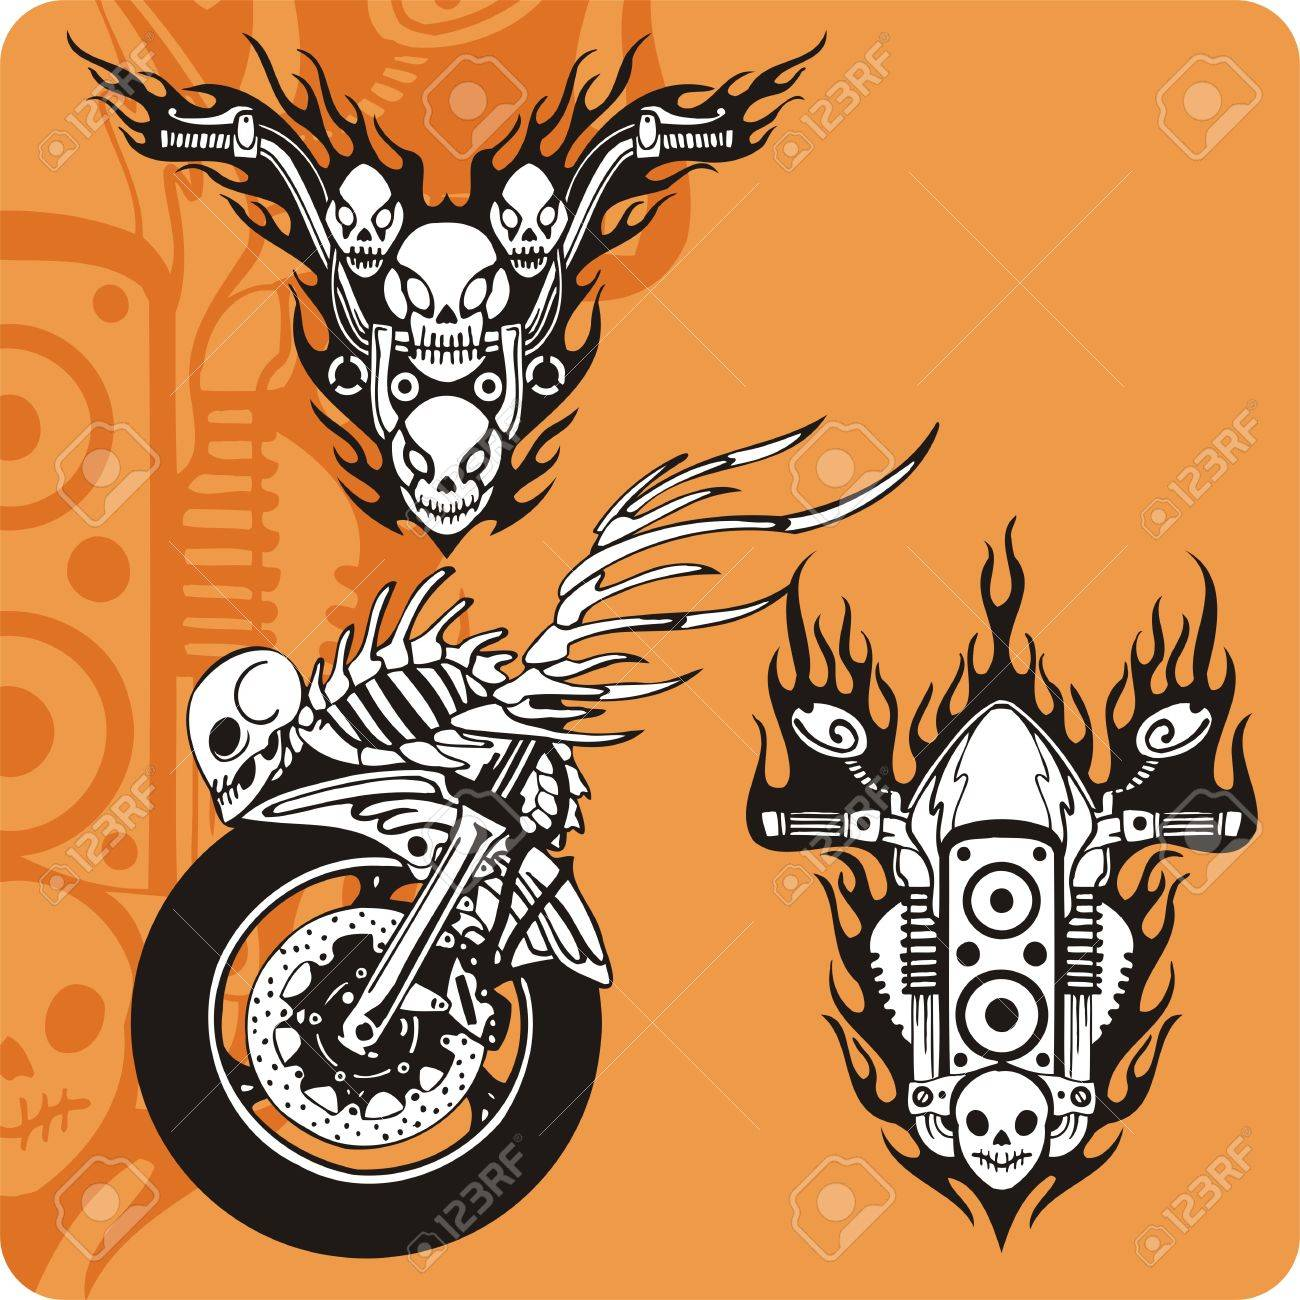 Motorcycle compositions with use of a flame, engines, exhaust